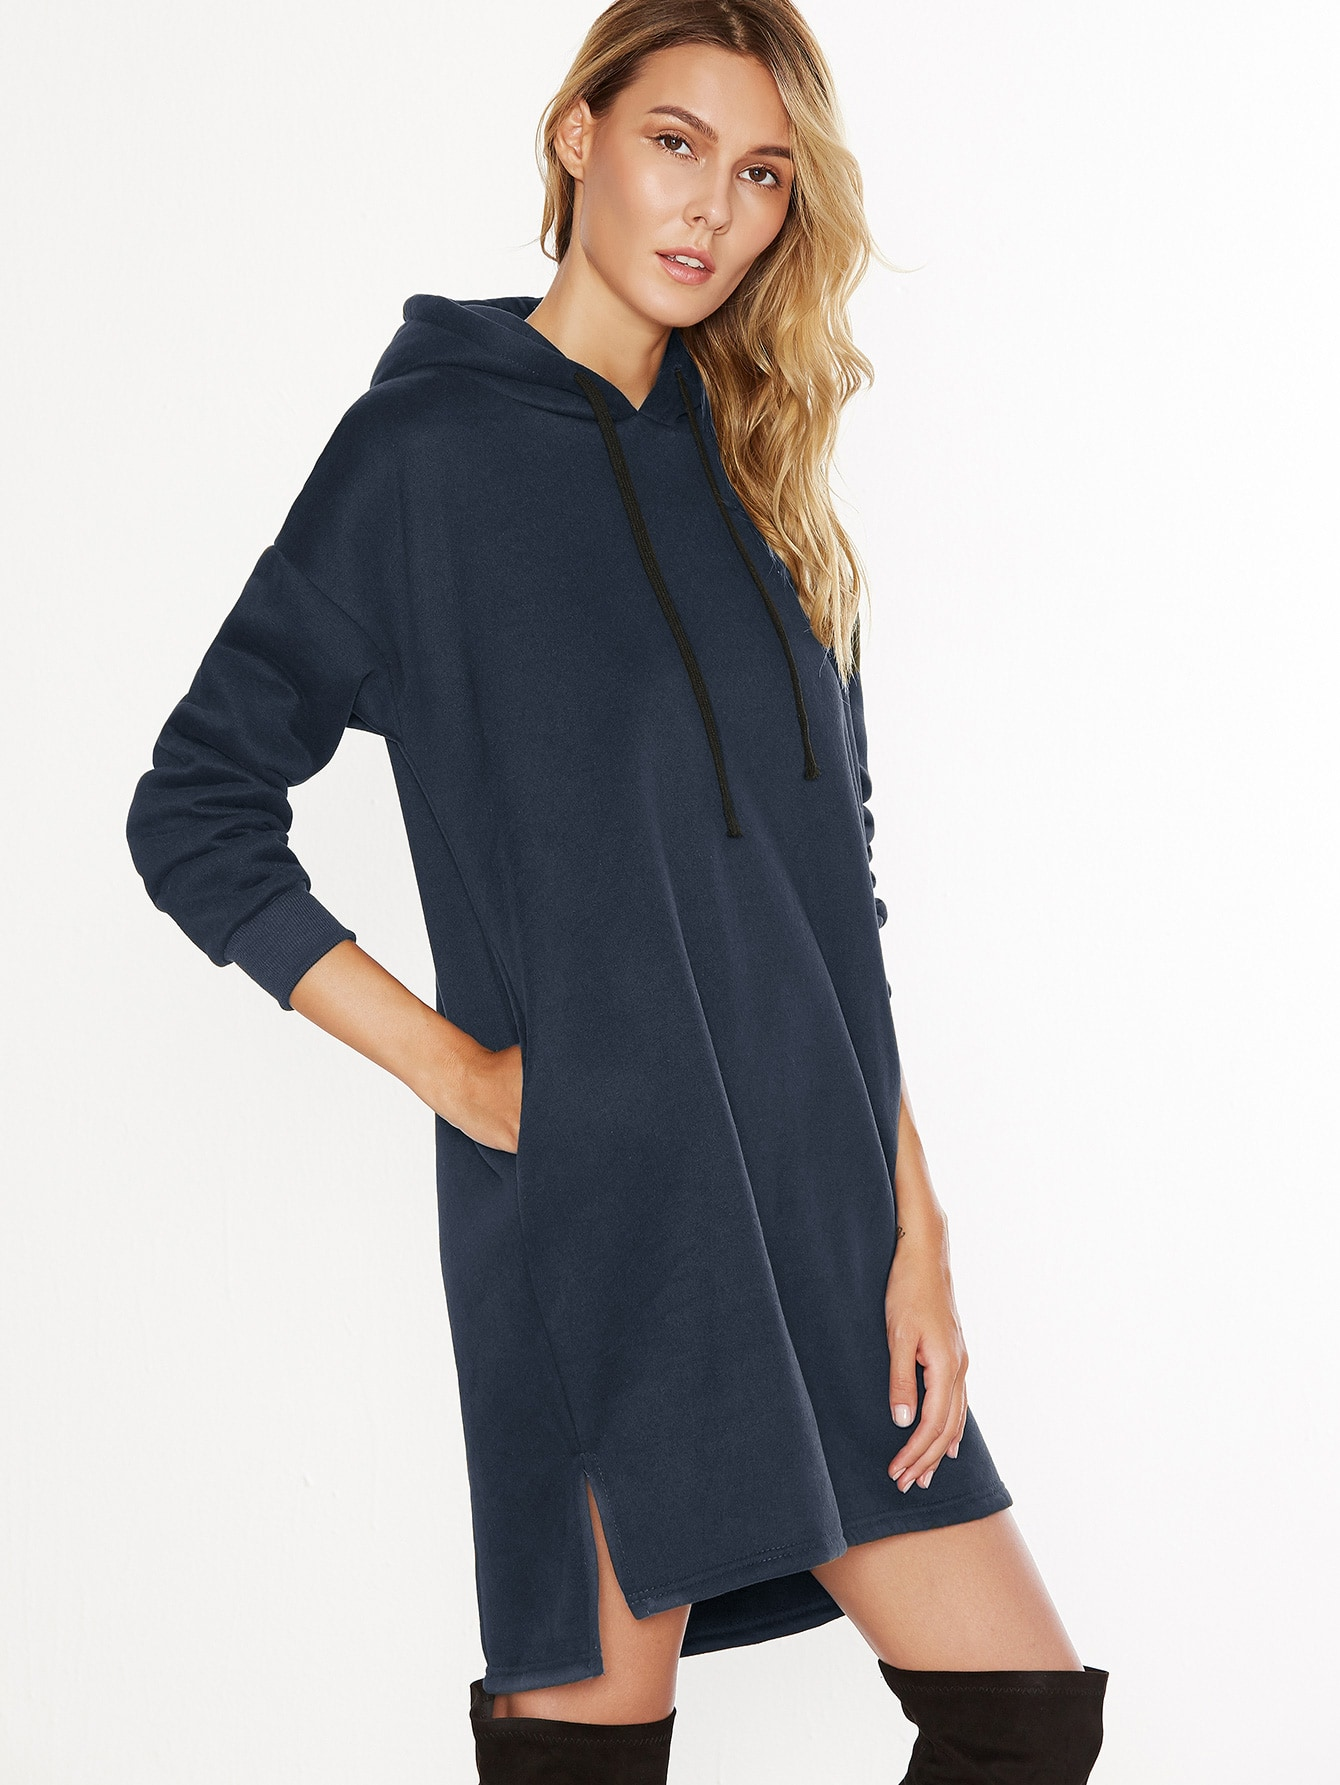 Navy Hooded Slit Side High Low Sweatshirt DressNavy Hooded Slit Side High Low Sweatshirt Dress<br><br>color: Navy<br>size: one-size